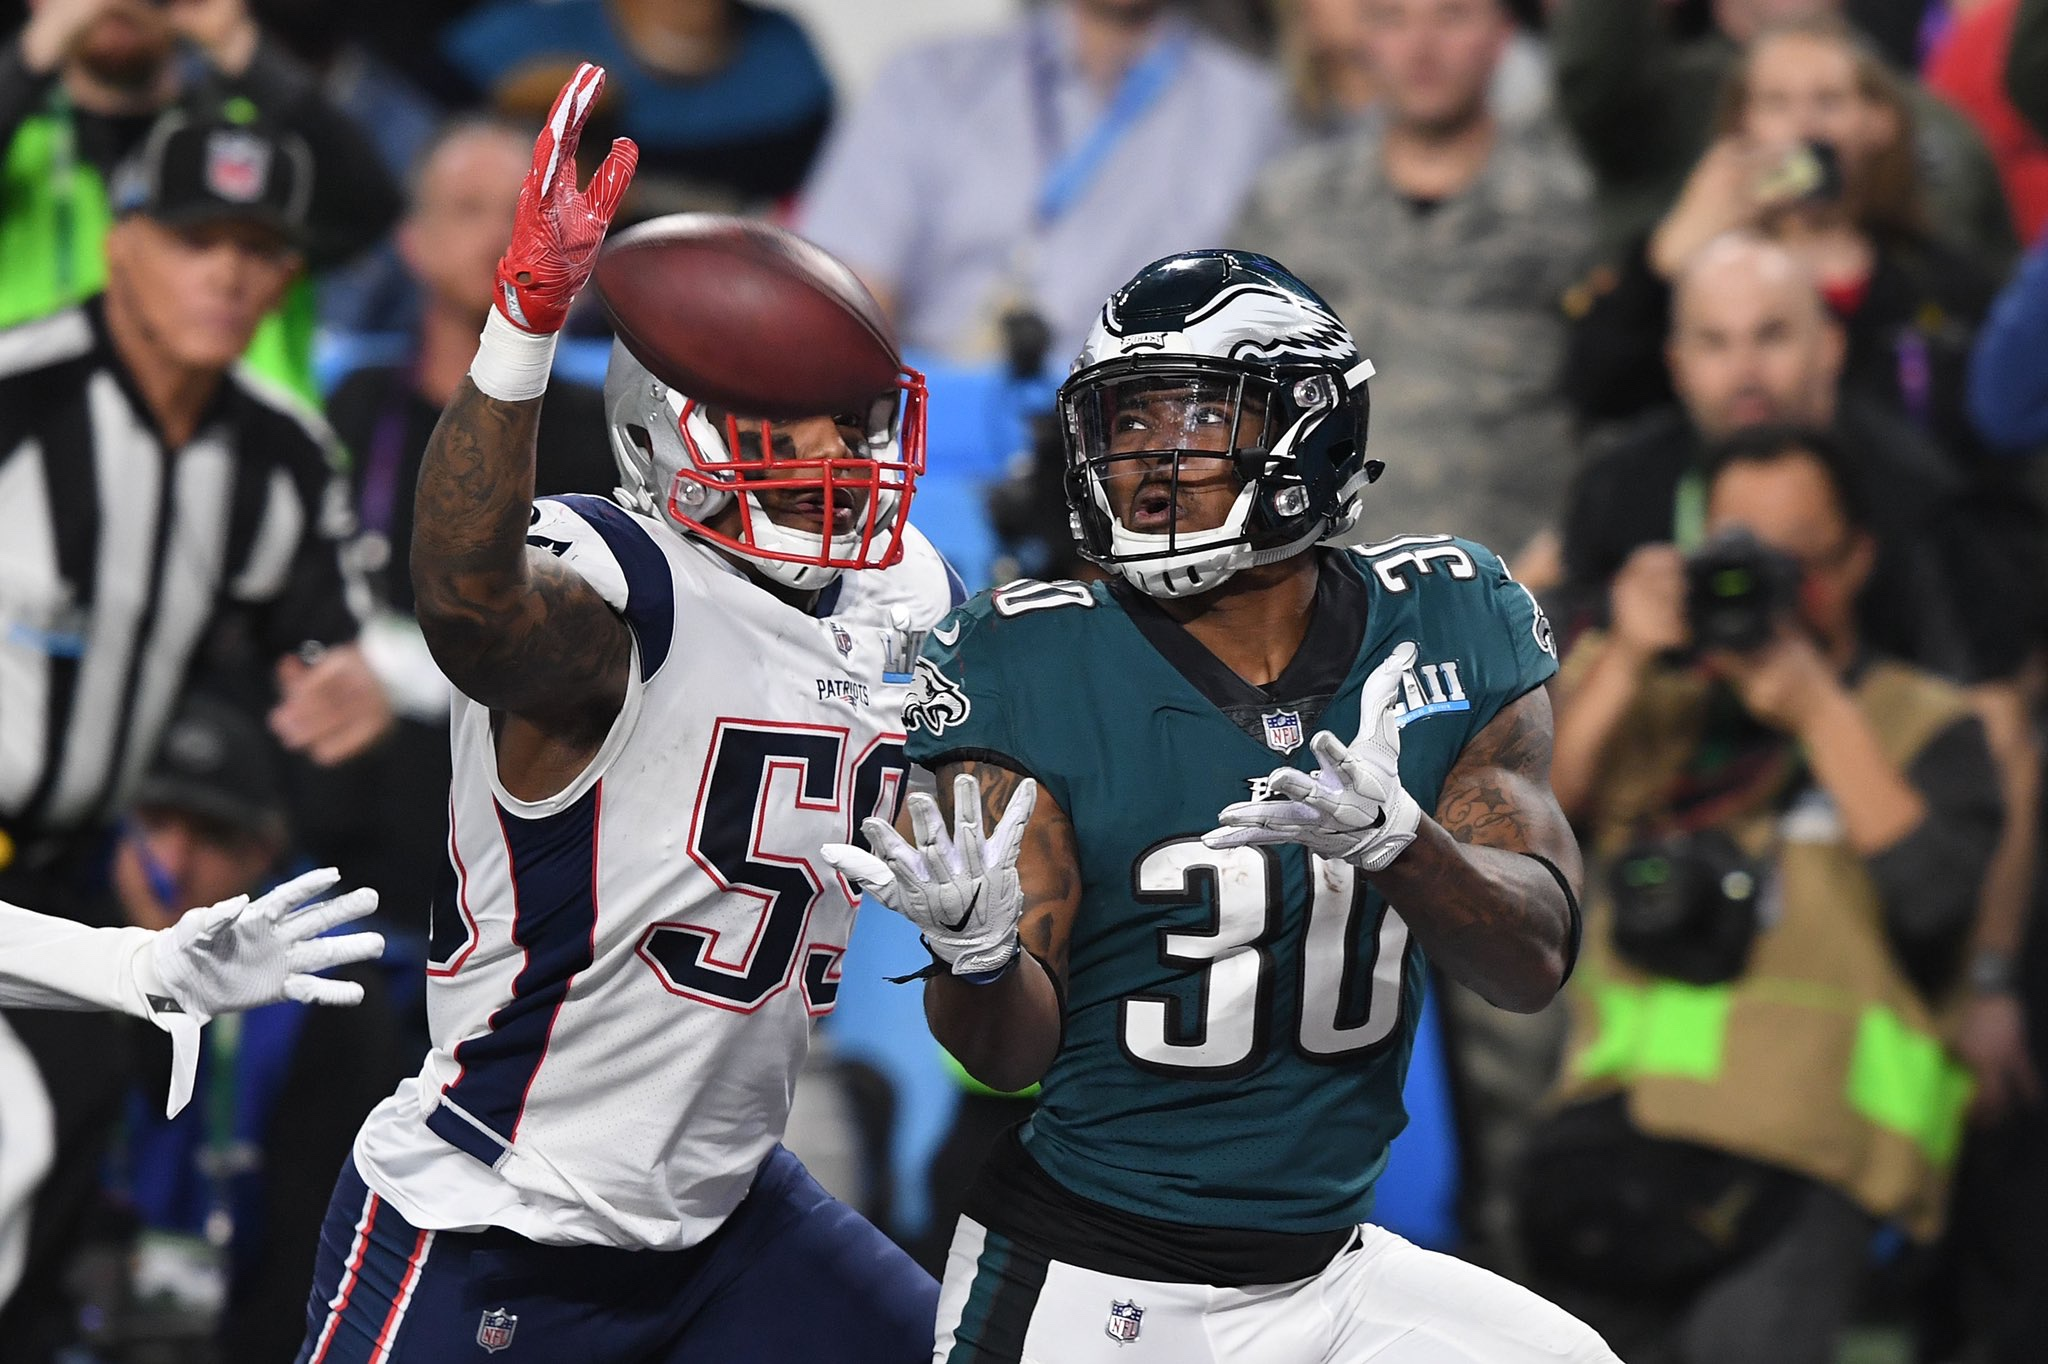 Corey Clement With A Thank You Philly Post, Now Off To The Enemy